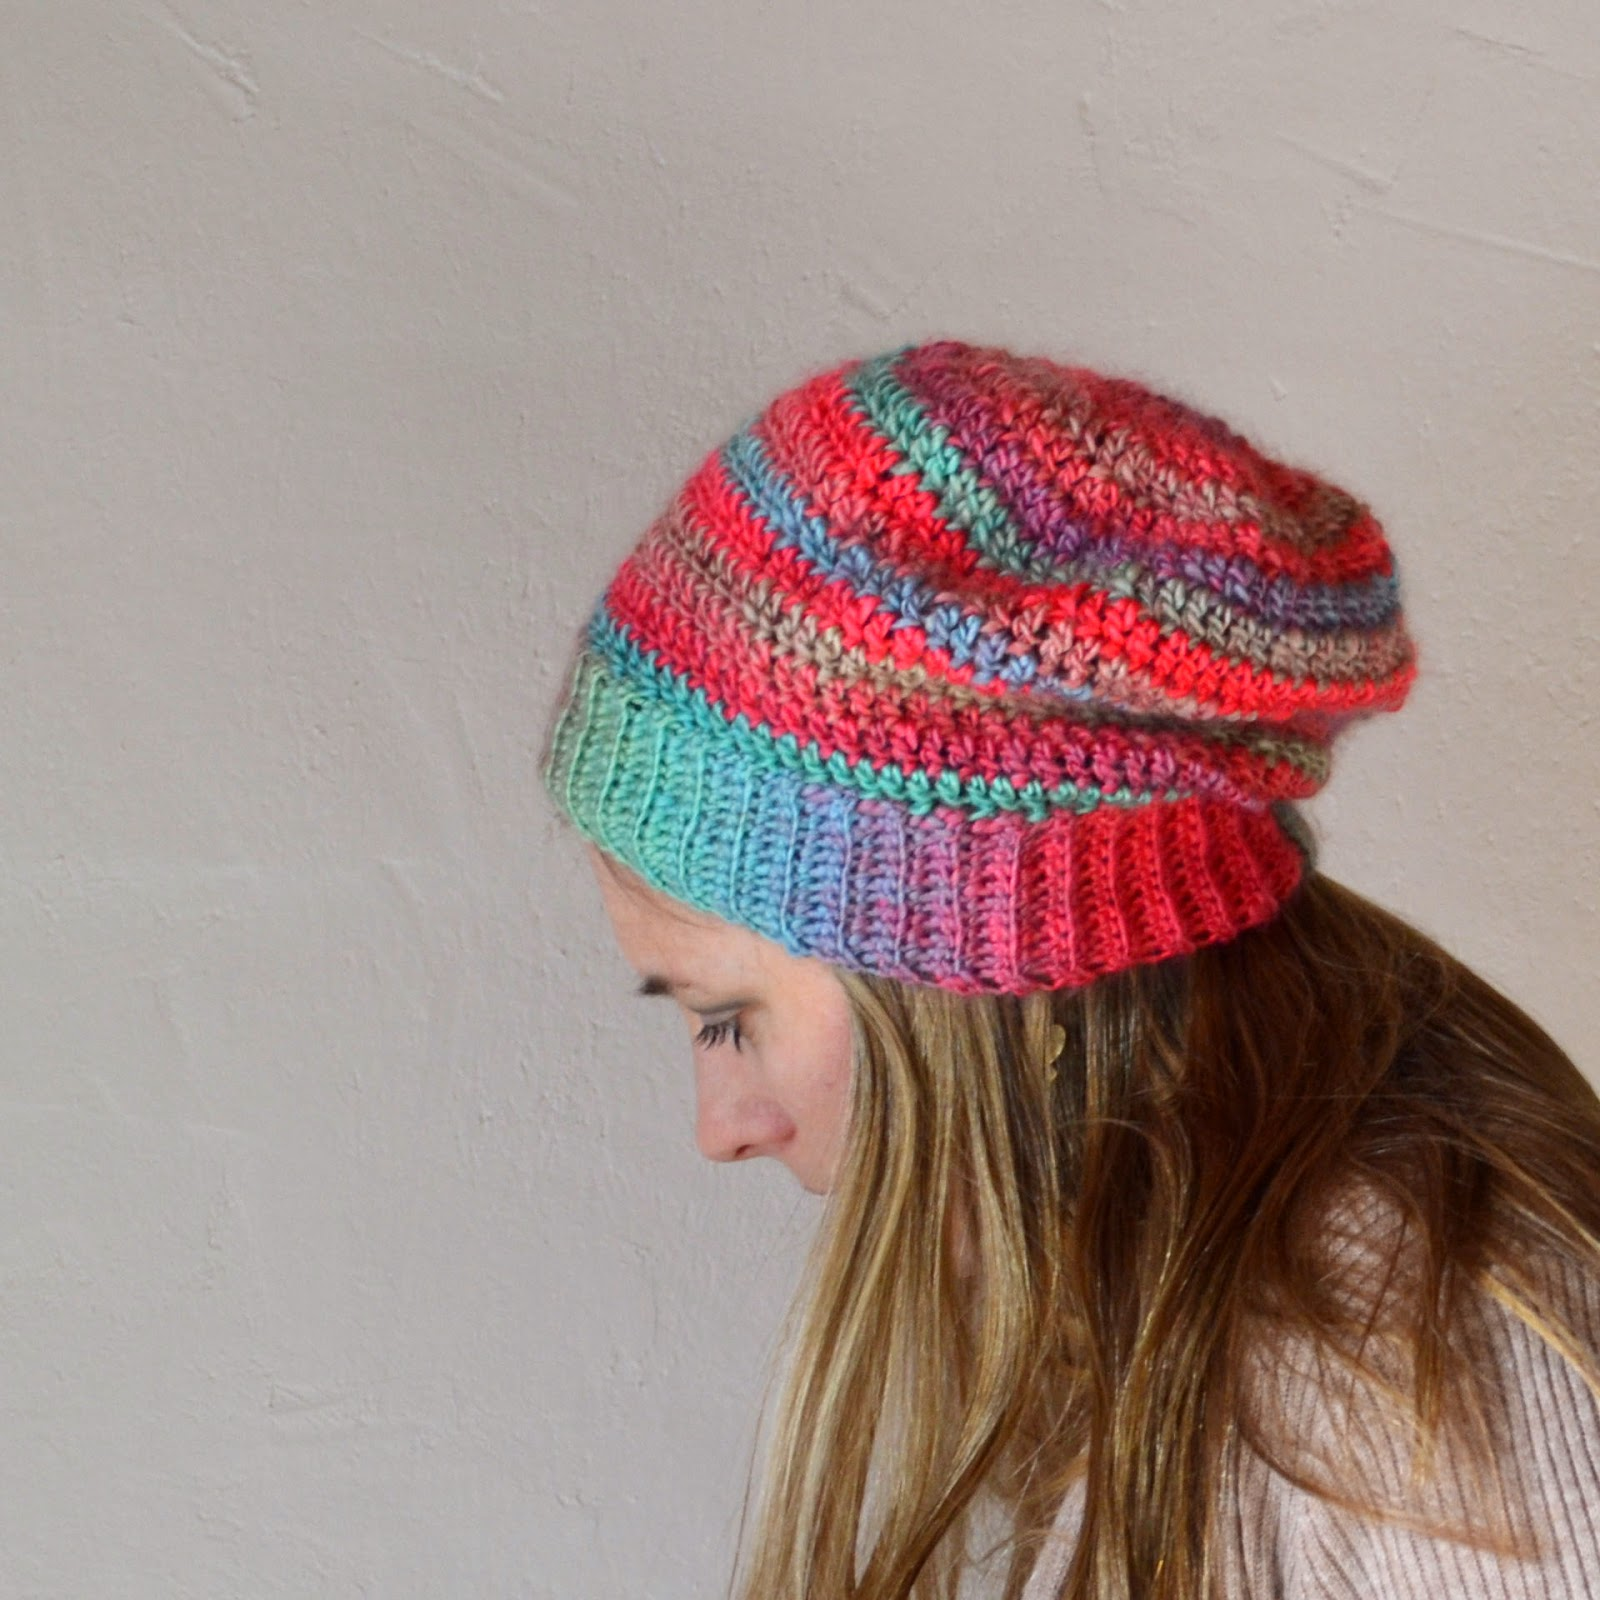 Crochet in Color: Unforgettable Hat